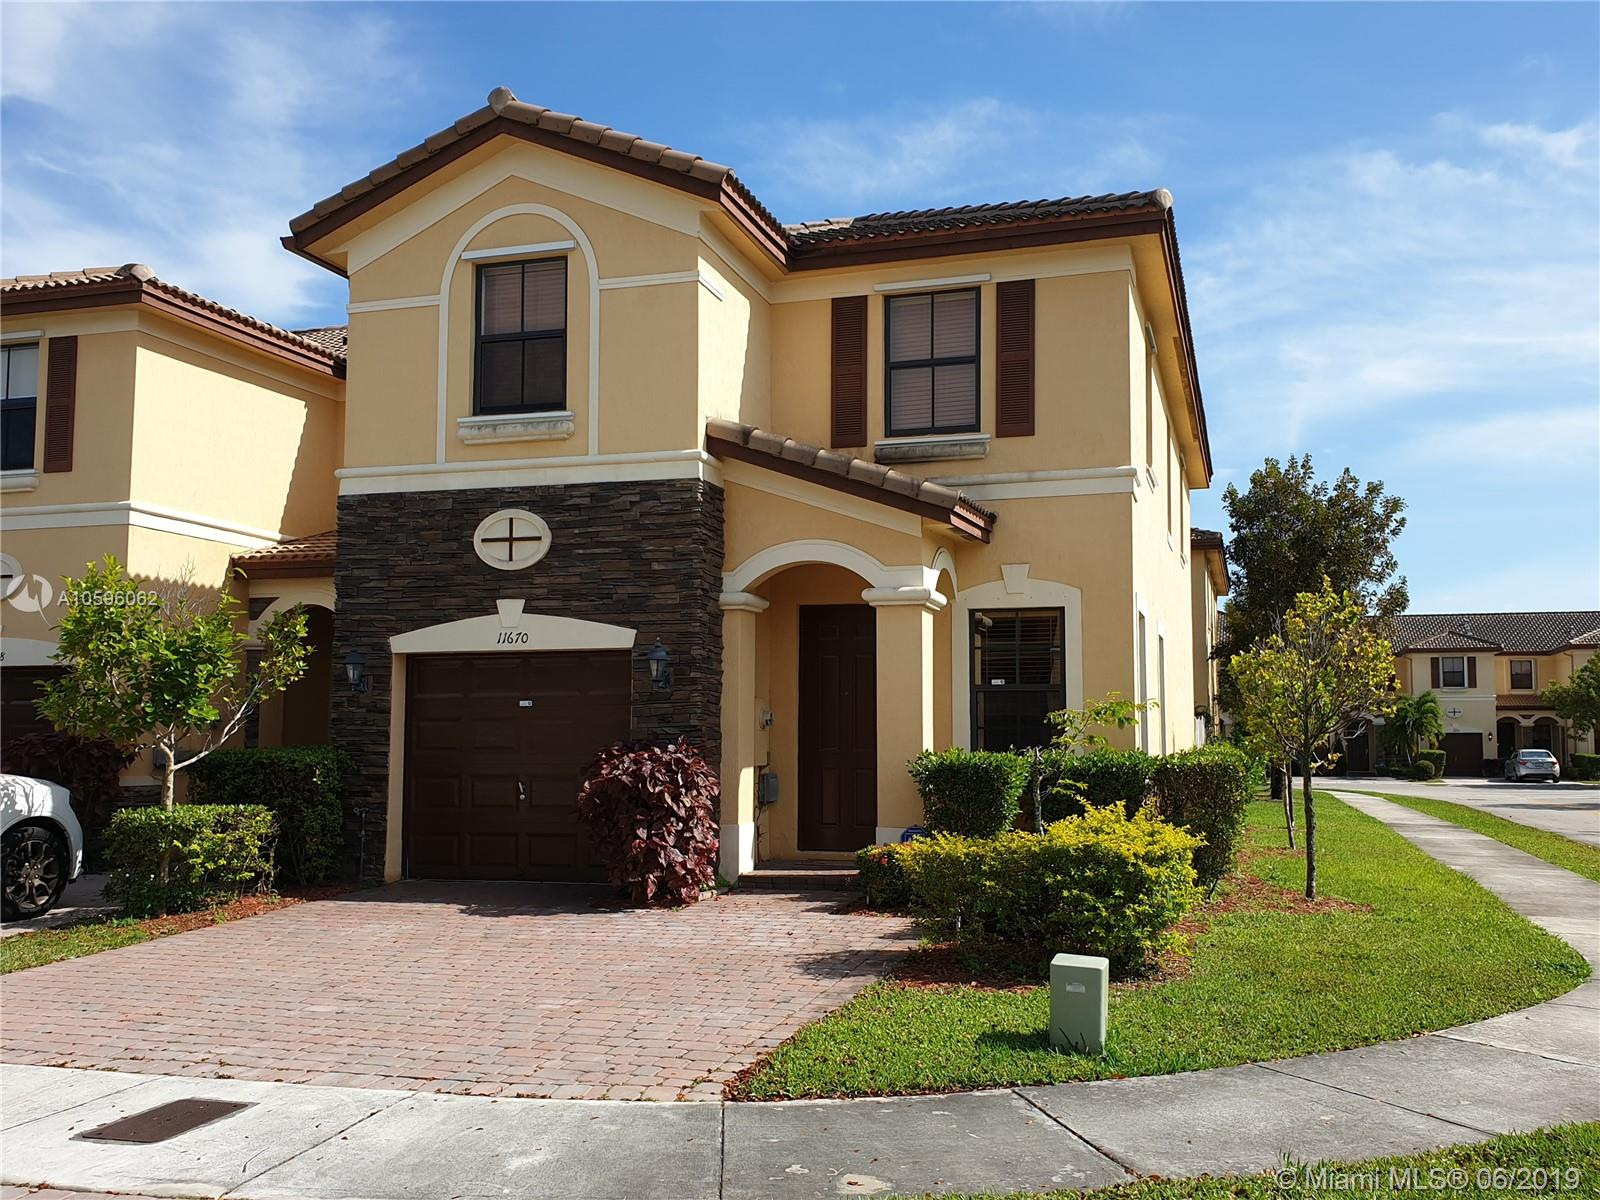 11670 NW 88th Ln, Doral in Miami-dade County County, FL 33178 Home for Sale